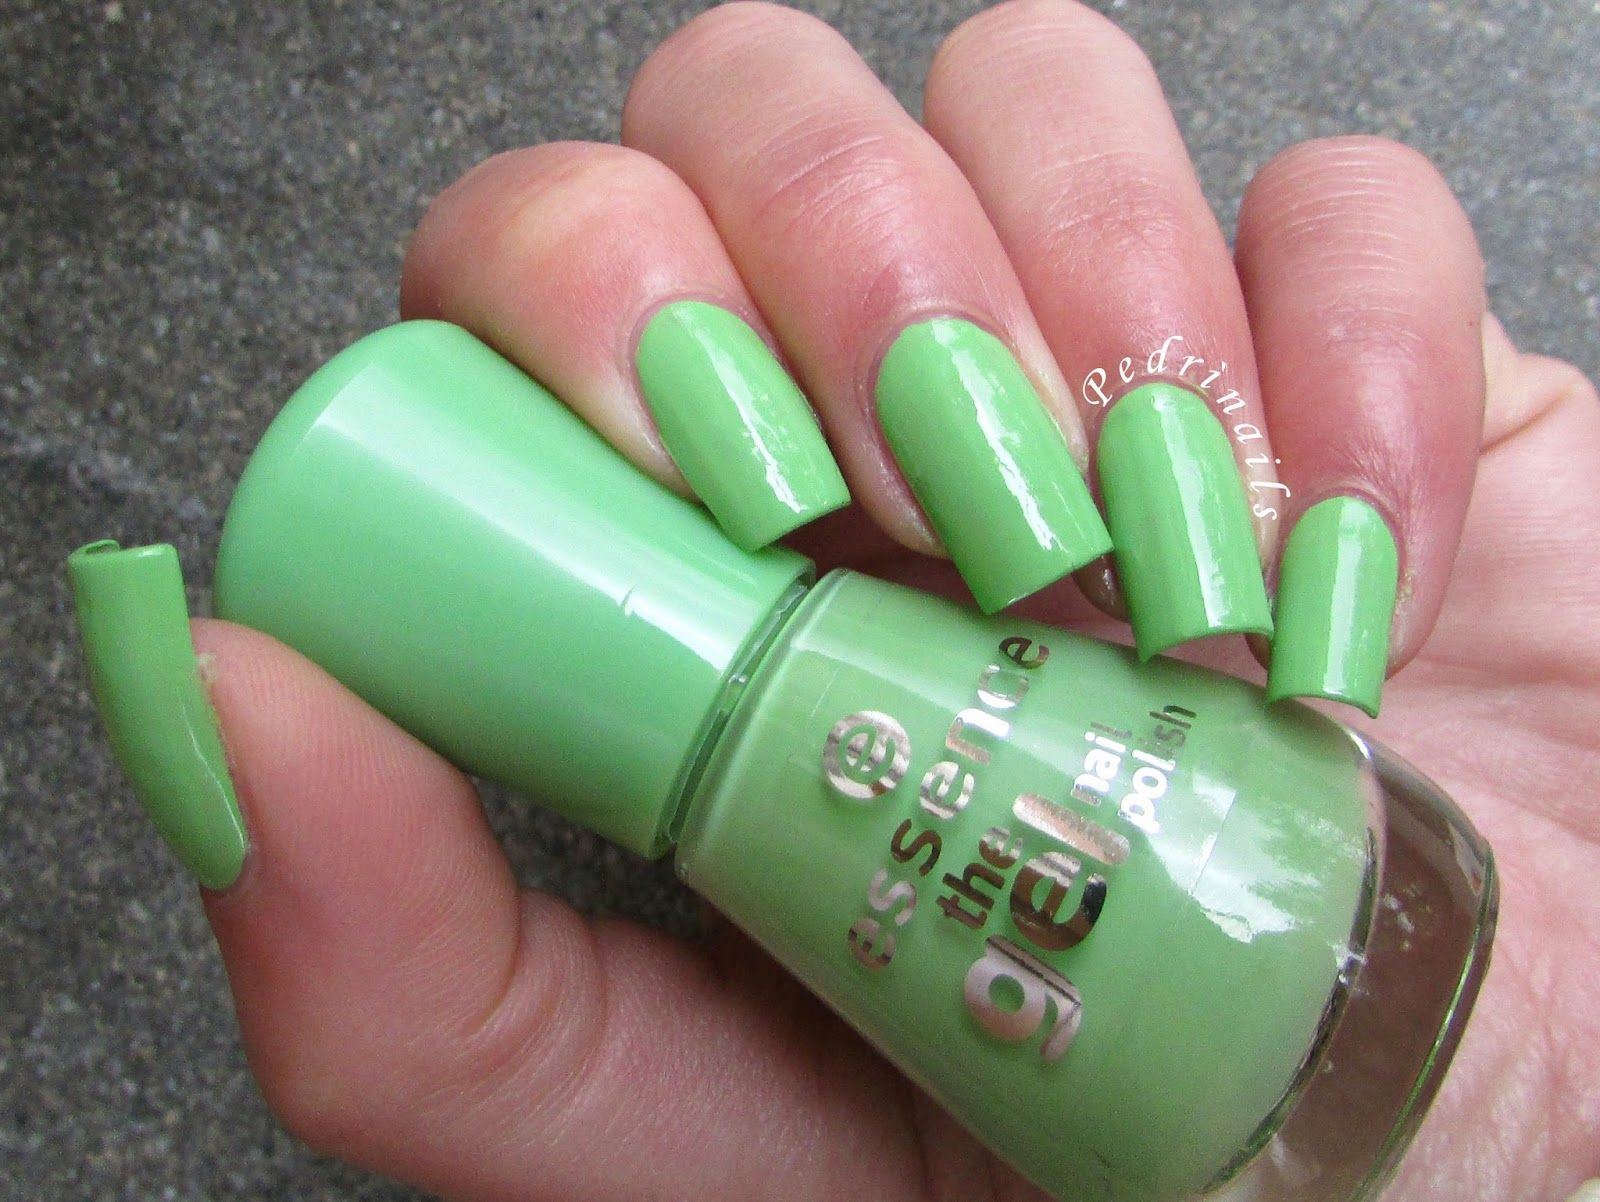 Swatch + Review: Essence - The gel nail polish (Brazil jungle ...